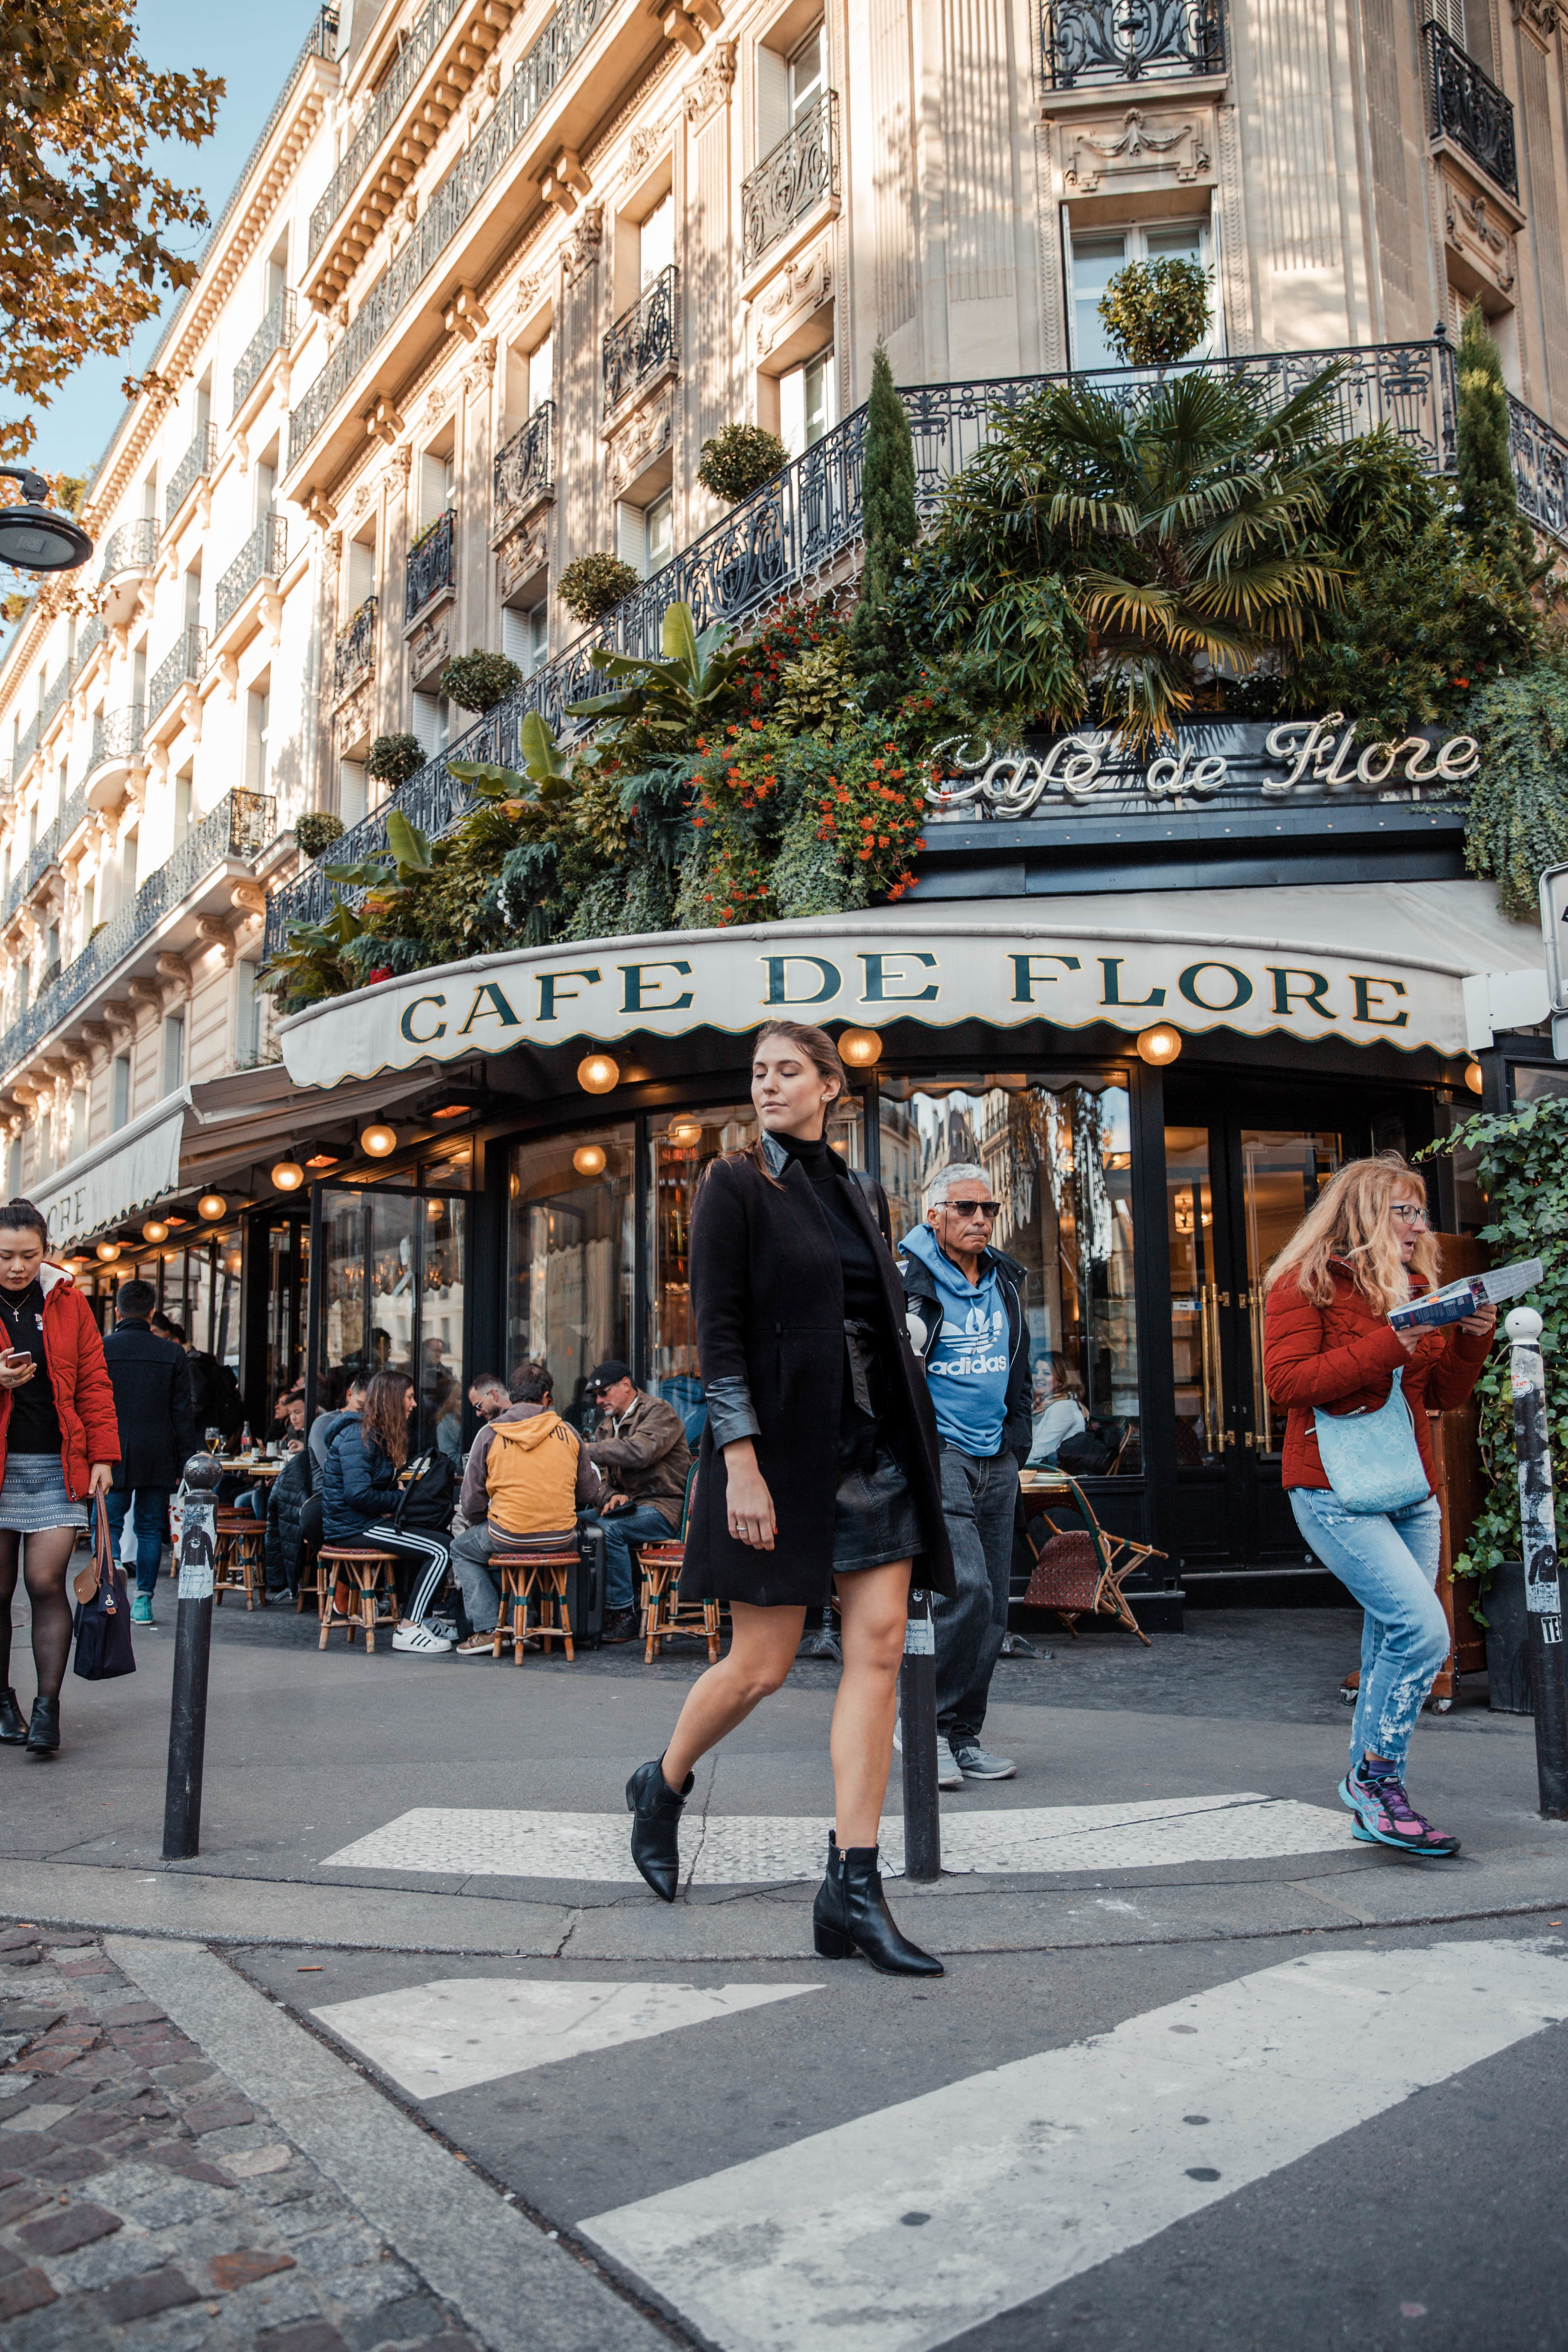 I Need Ideas For Decorating My Living Room: The Best Paris Instagram Spots